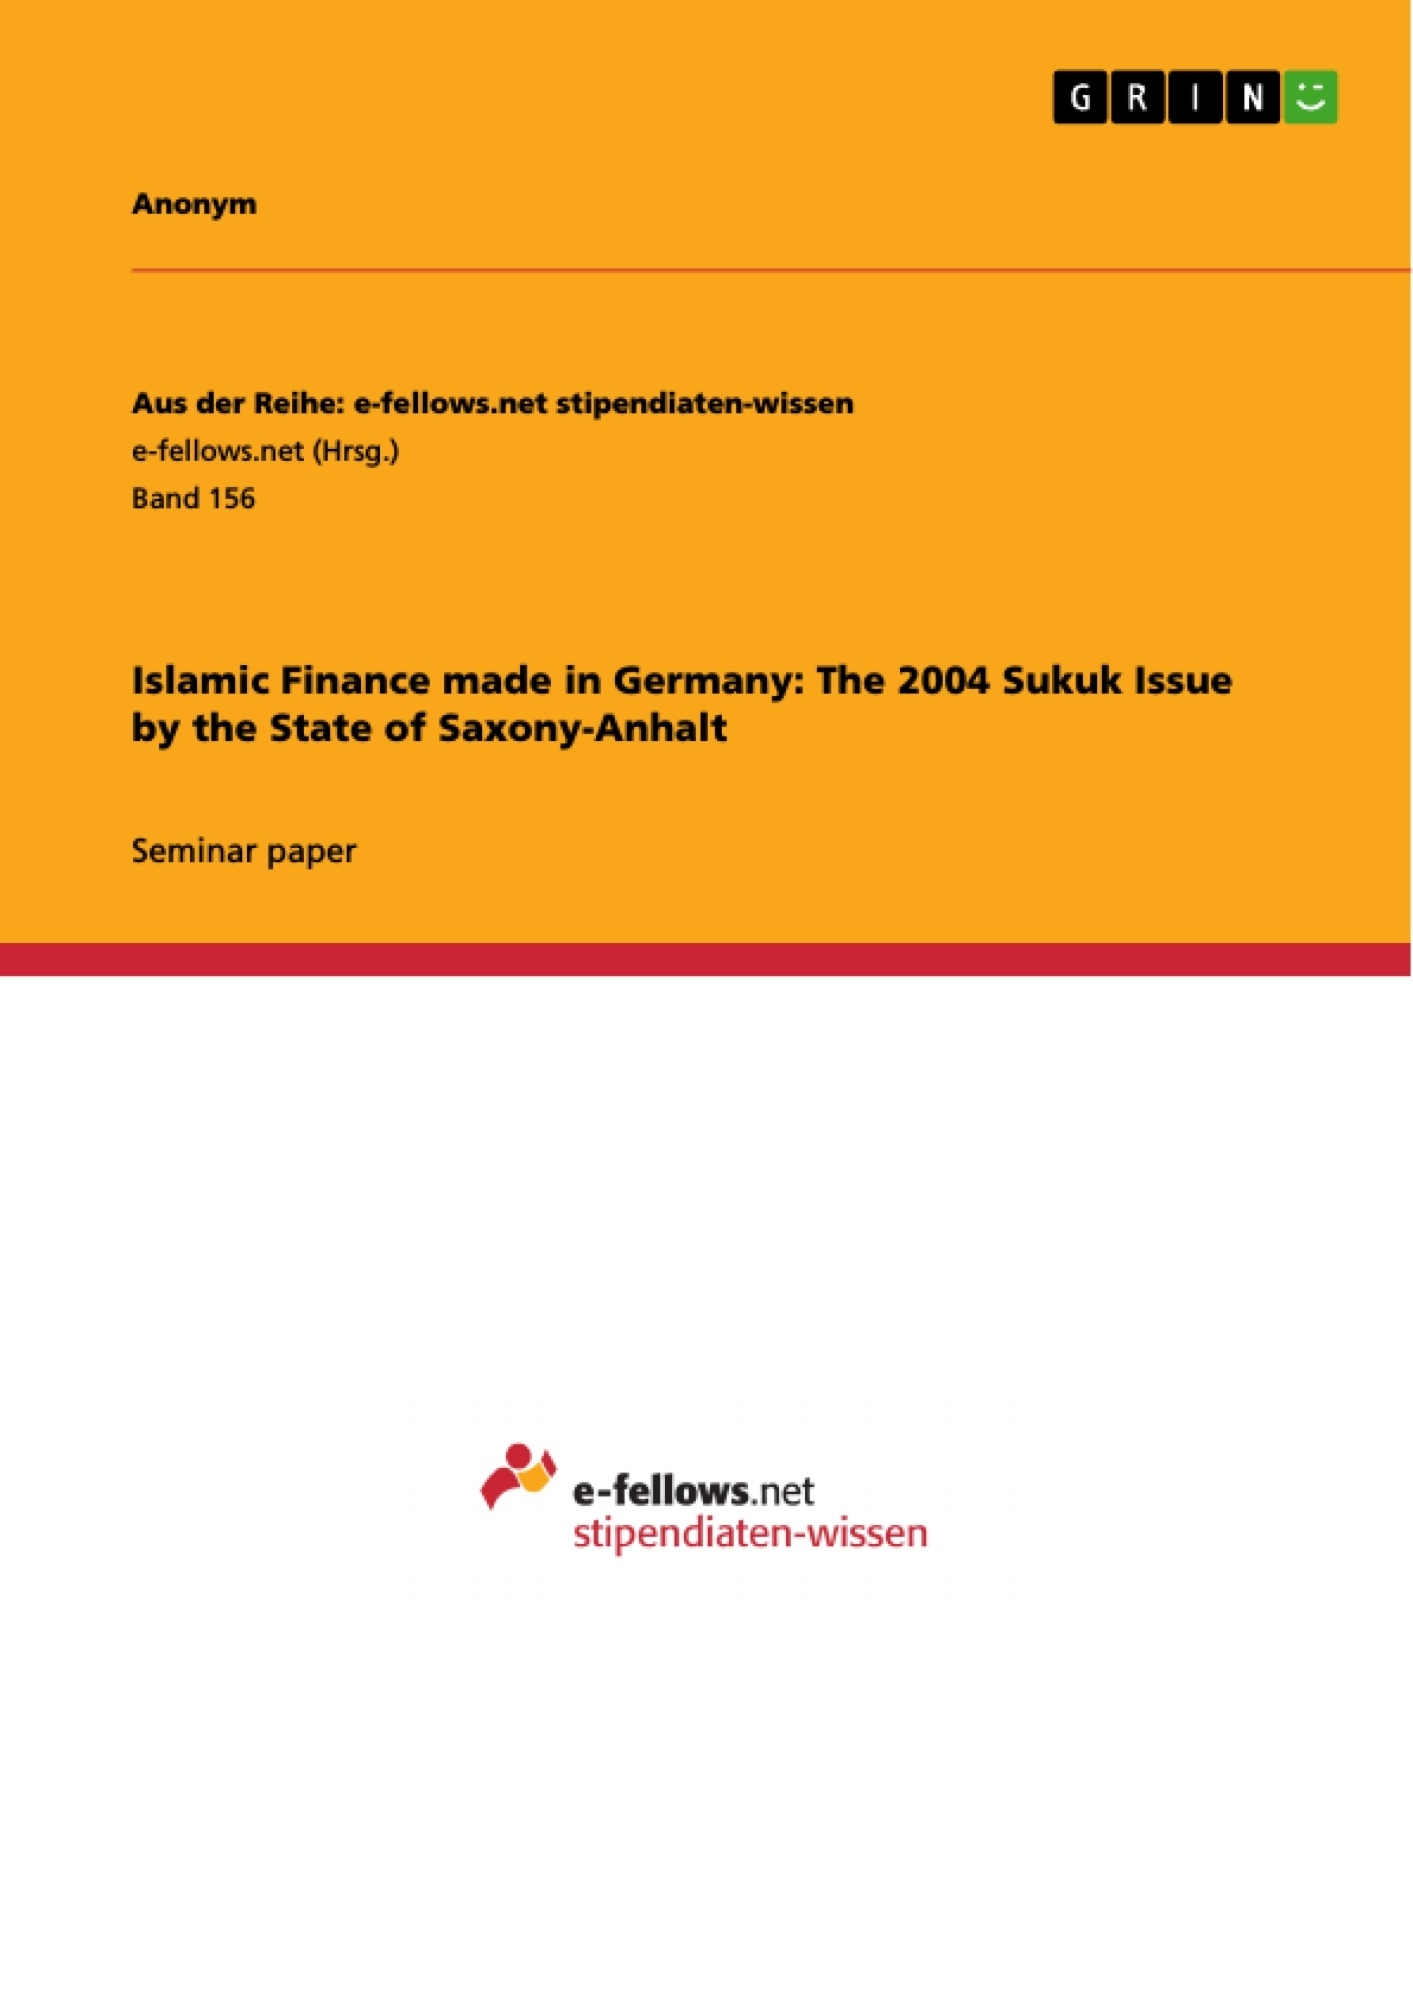 Title: Islamic Finance made in Germany: The 2004 Sukuk Issue by the State of Saxony-Anhalt